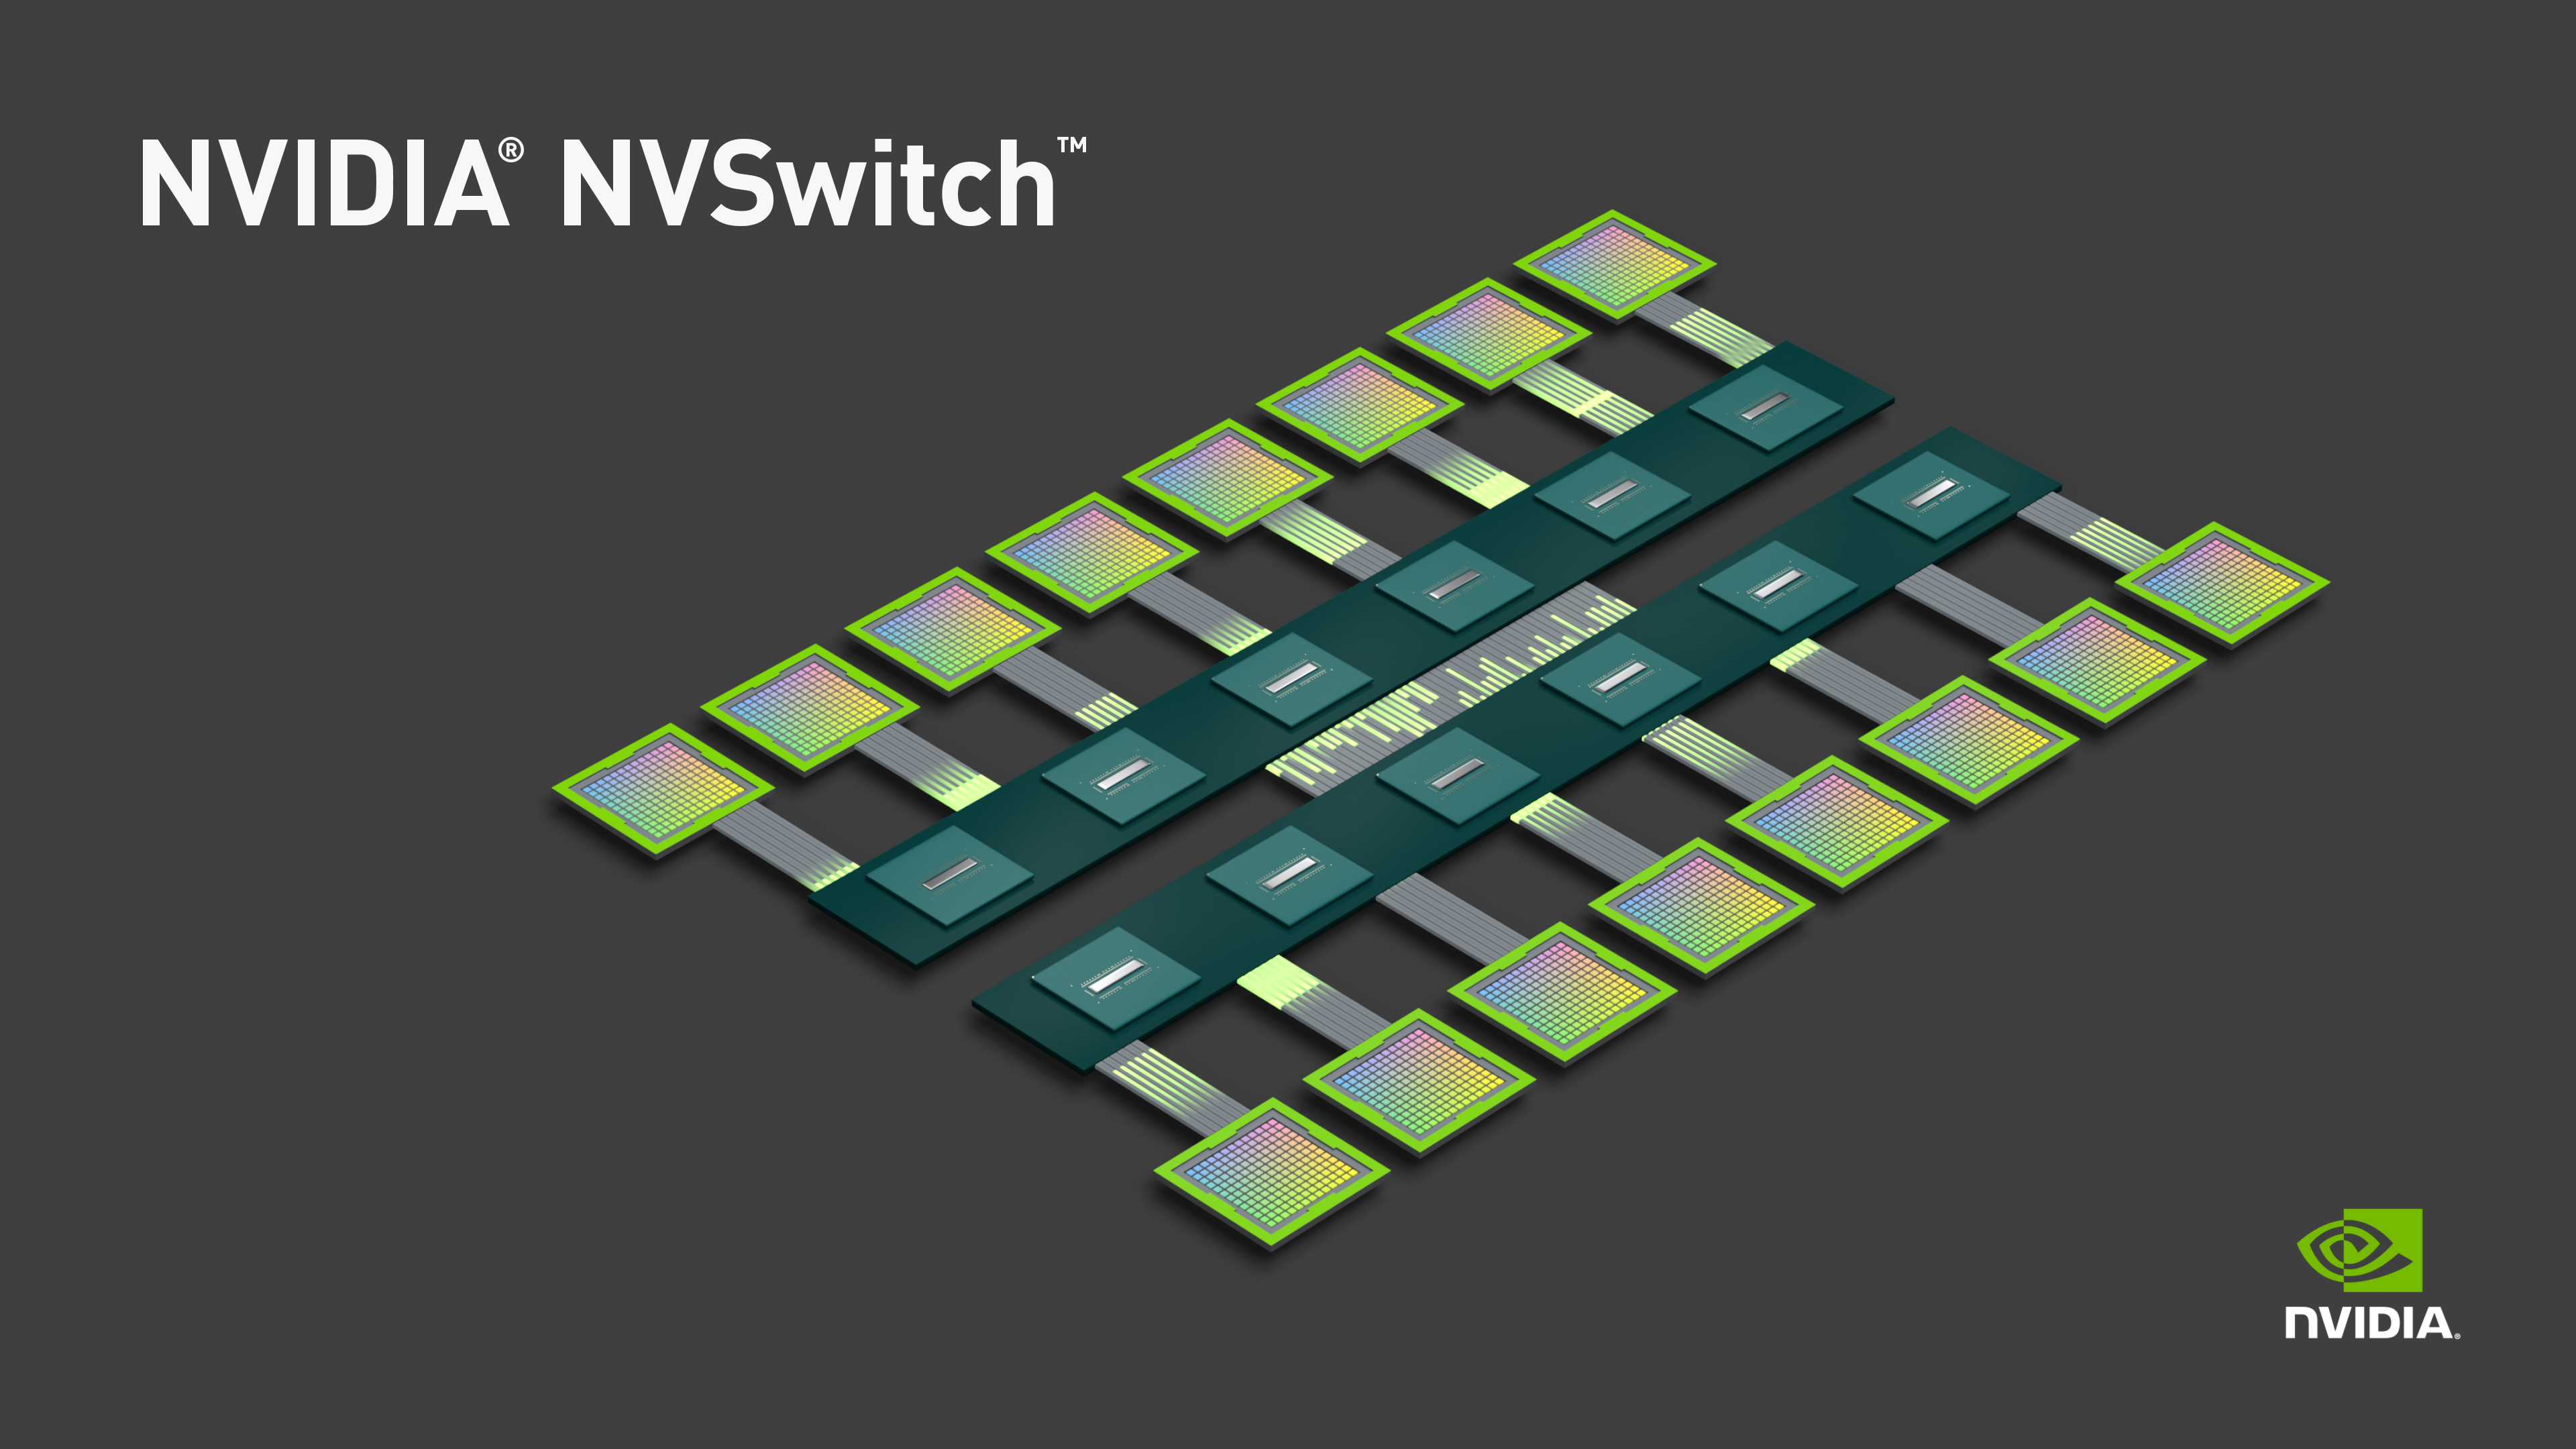 nvidia_nvswitch_diagram